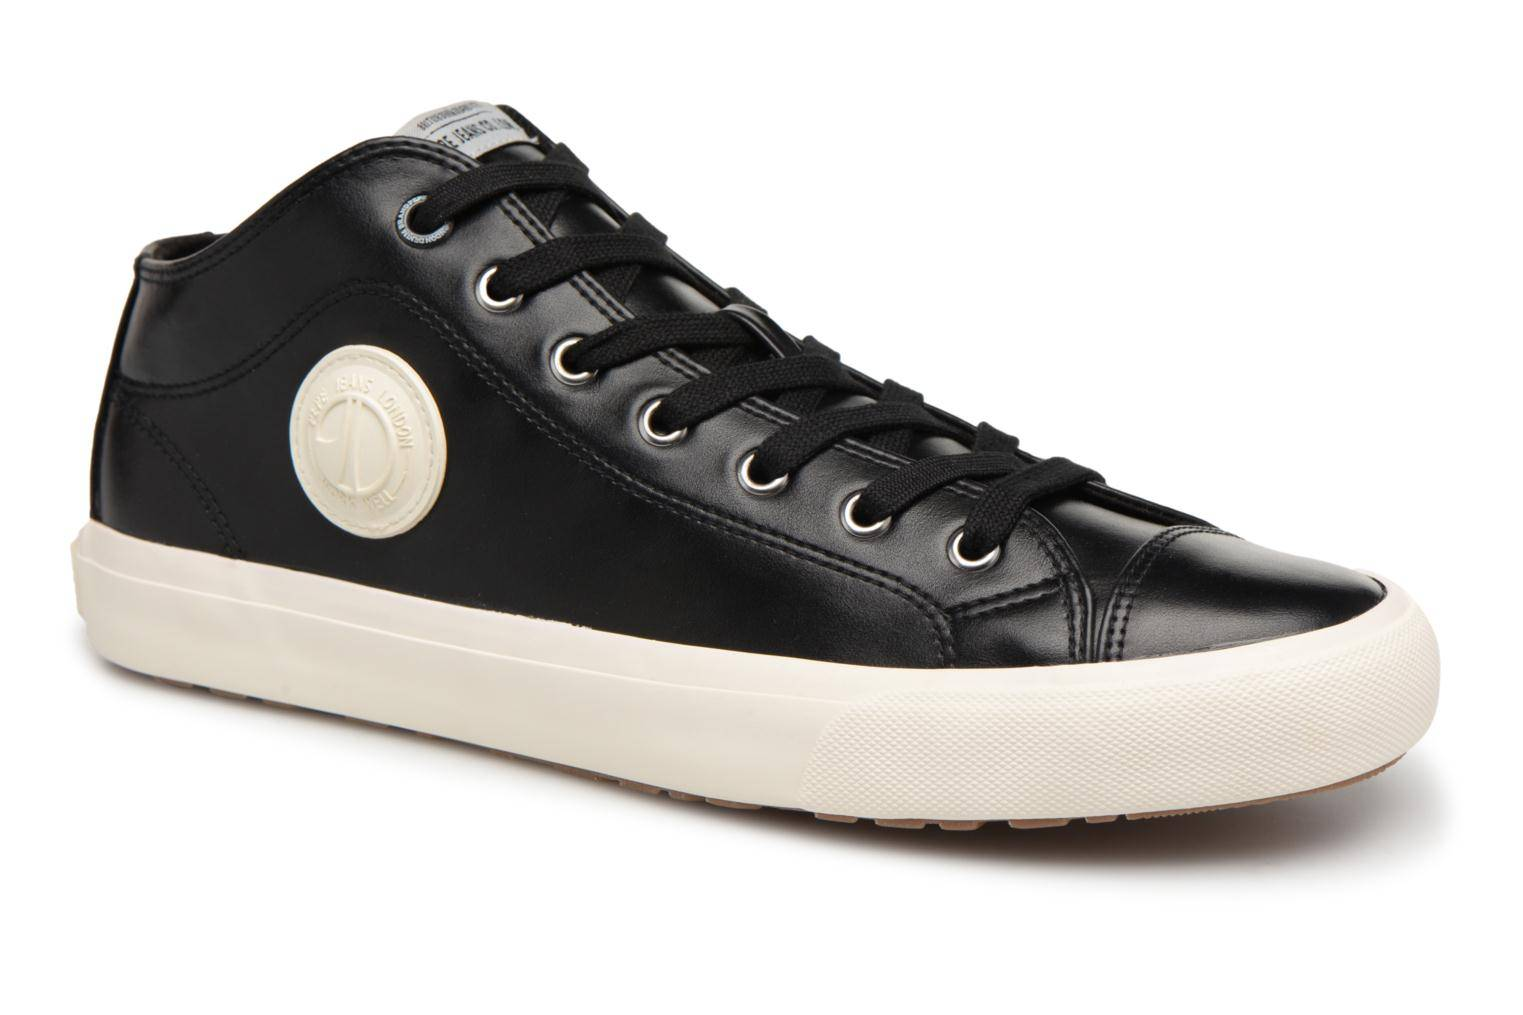 Pepe jeans INDUSTRY PRO-BASIC - Baskets Homme, Noir